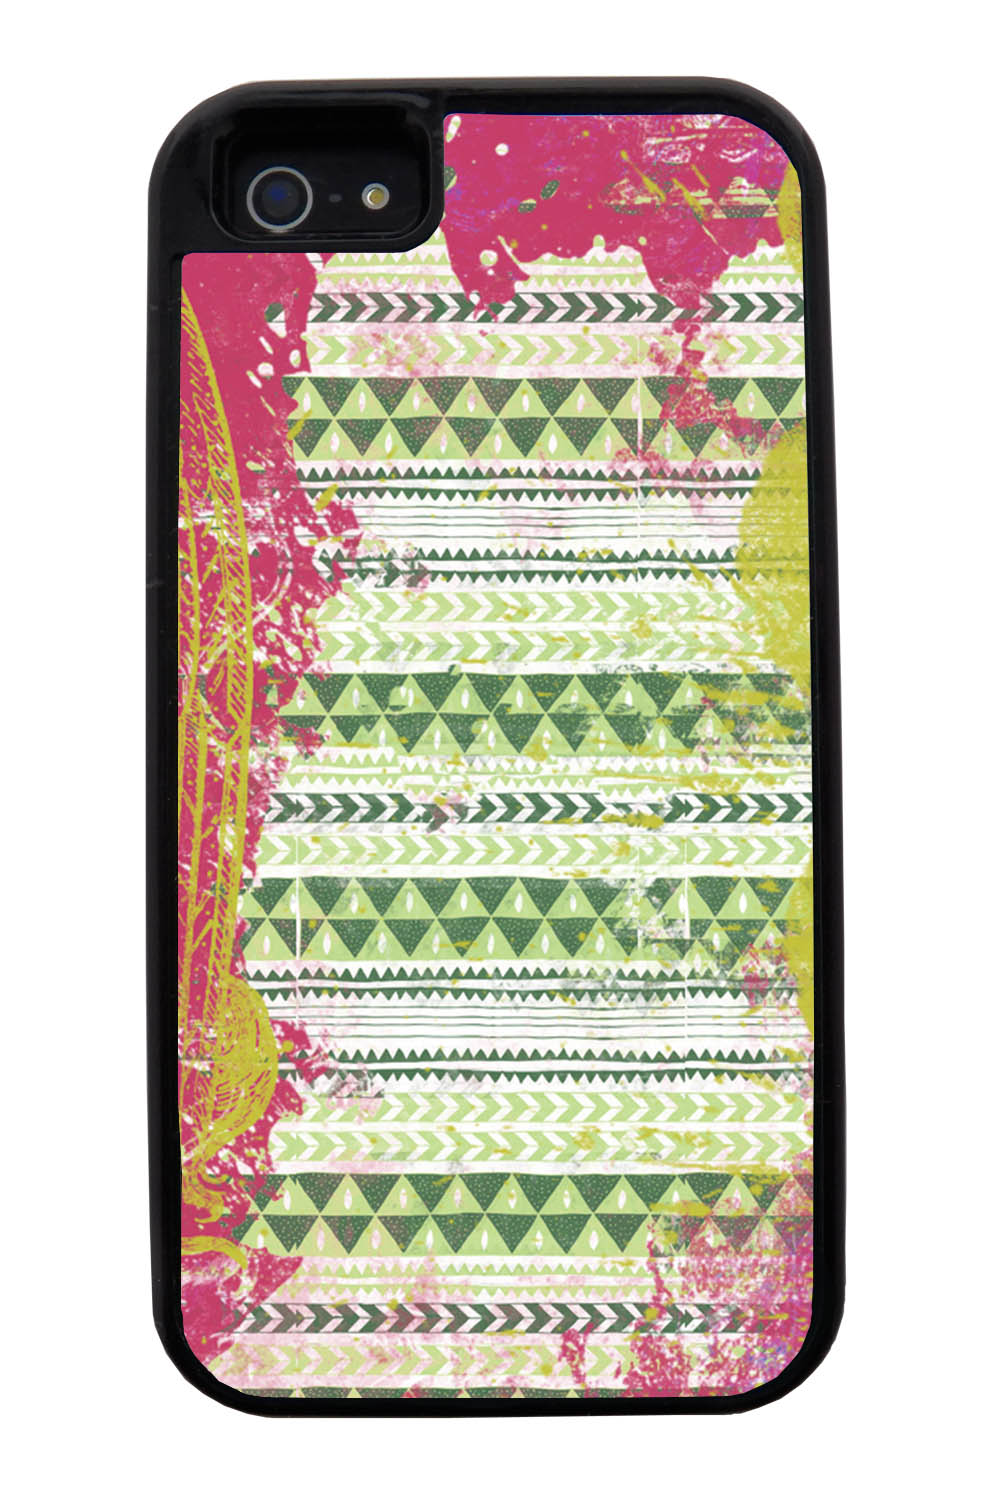 Apple iPhone 5 / 5S Aztec Case - Pink and Yellow Paint with Green - Paint Splatter Overlay - Black Tough Hybrid Case